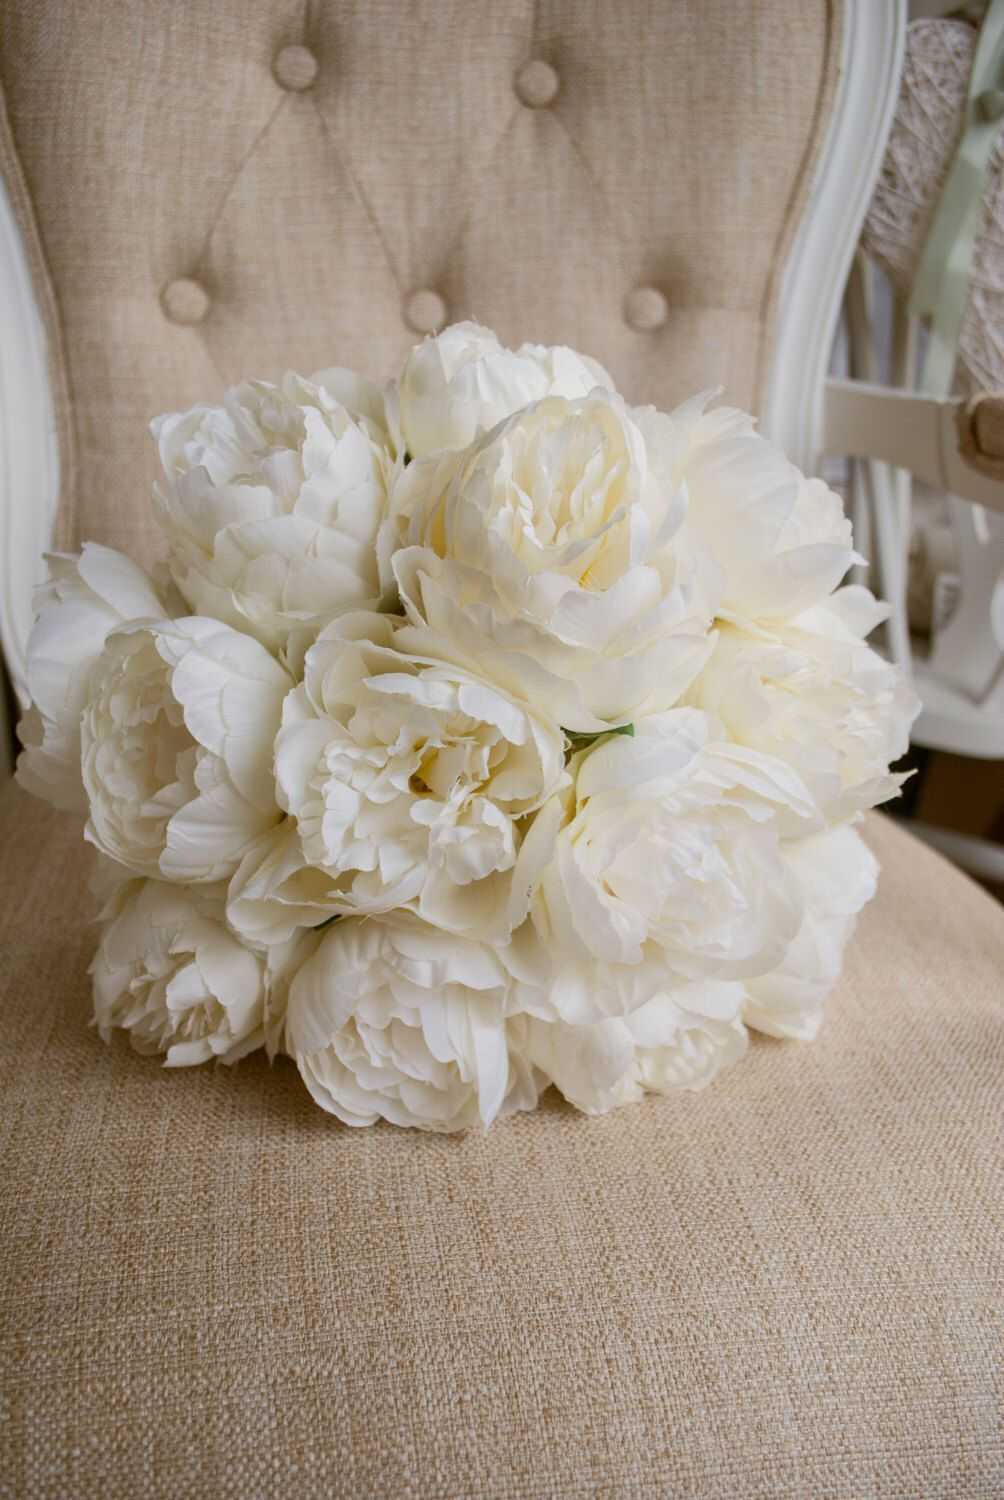 White Peony Bouquet Silk Flowers Laurel Weddings From My Etsy